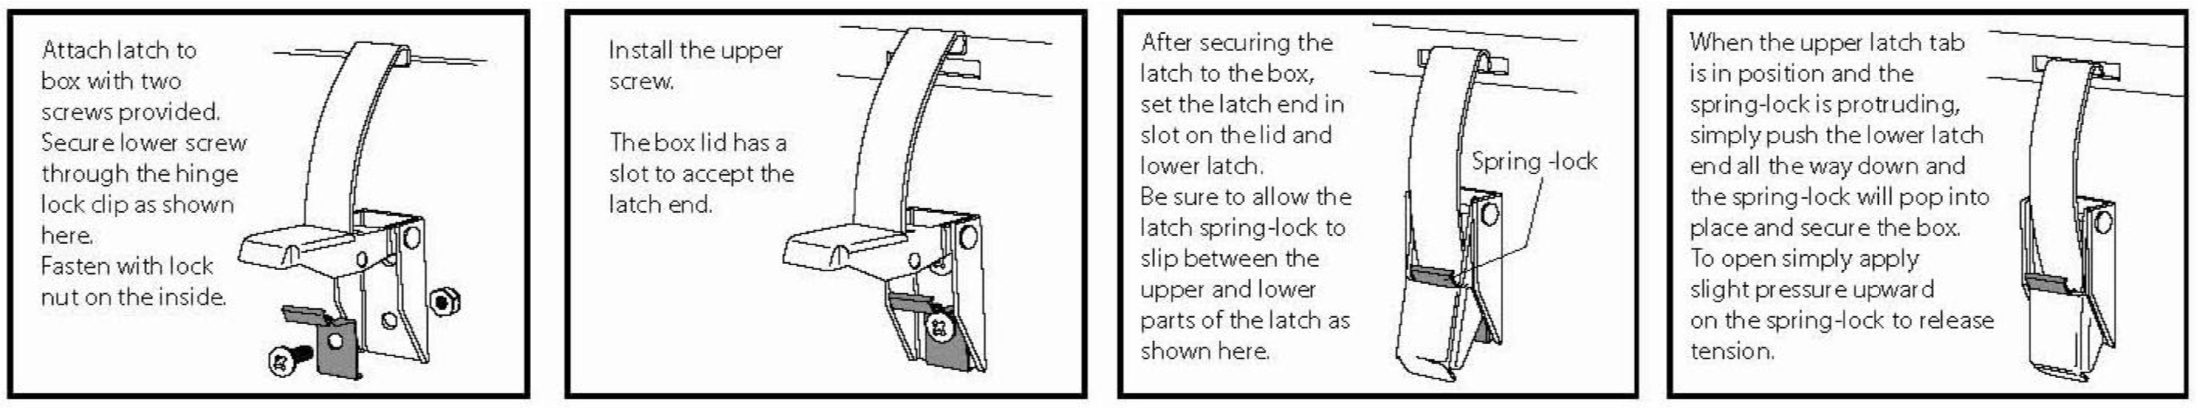 diagram showing proper latch installation